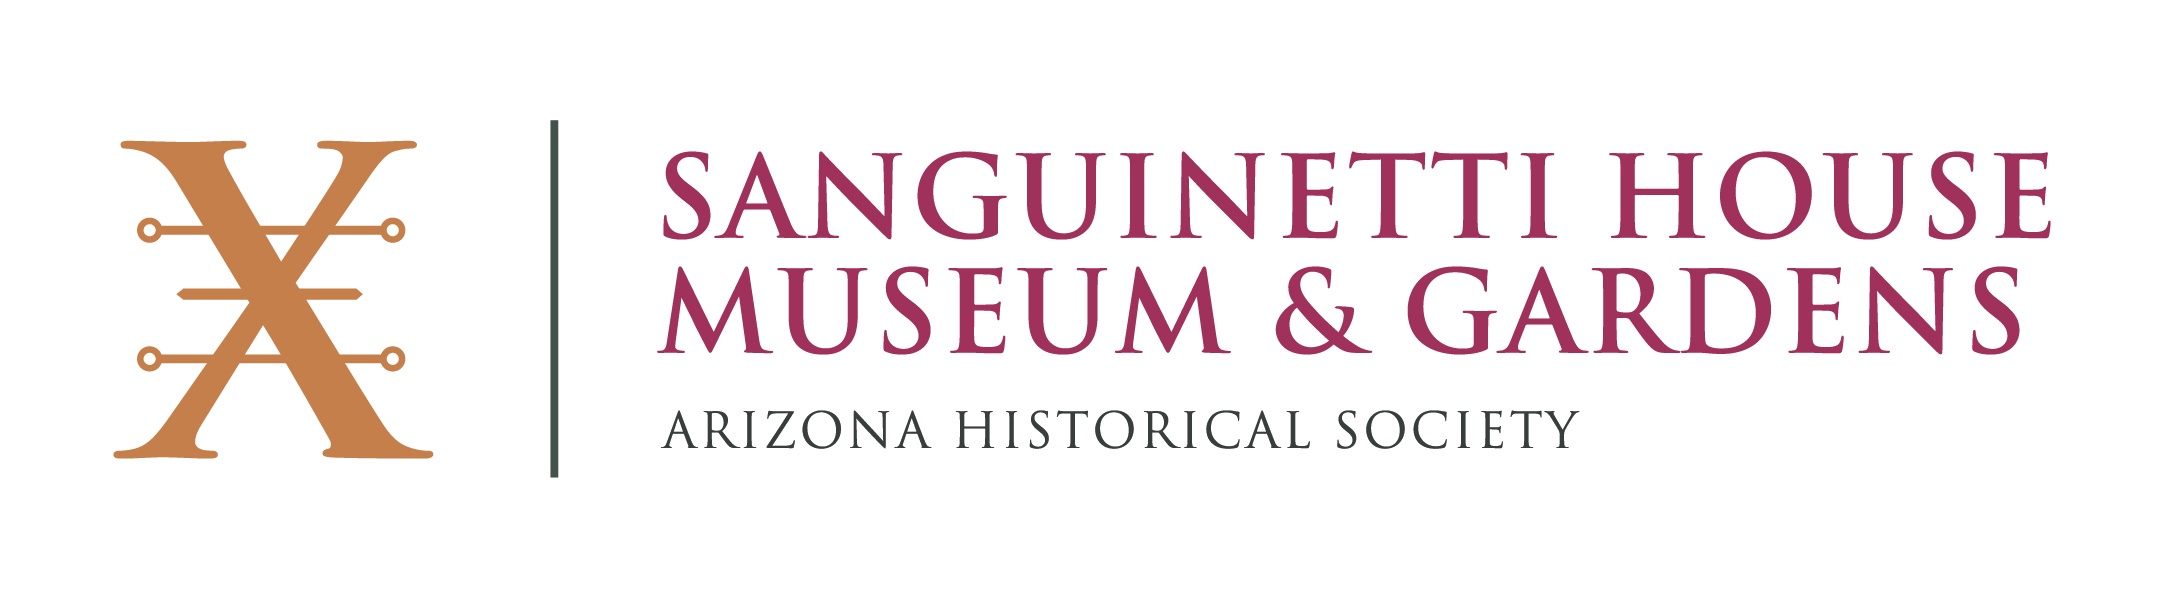 Ahs sanguinetti house logo final color